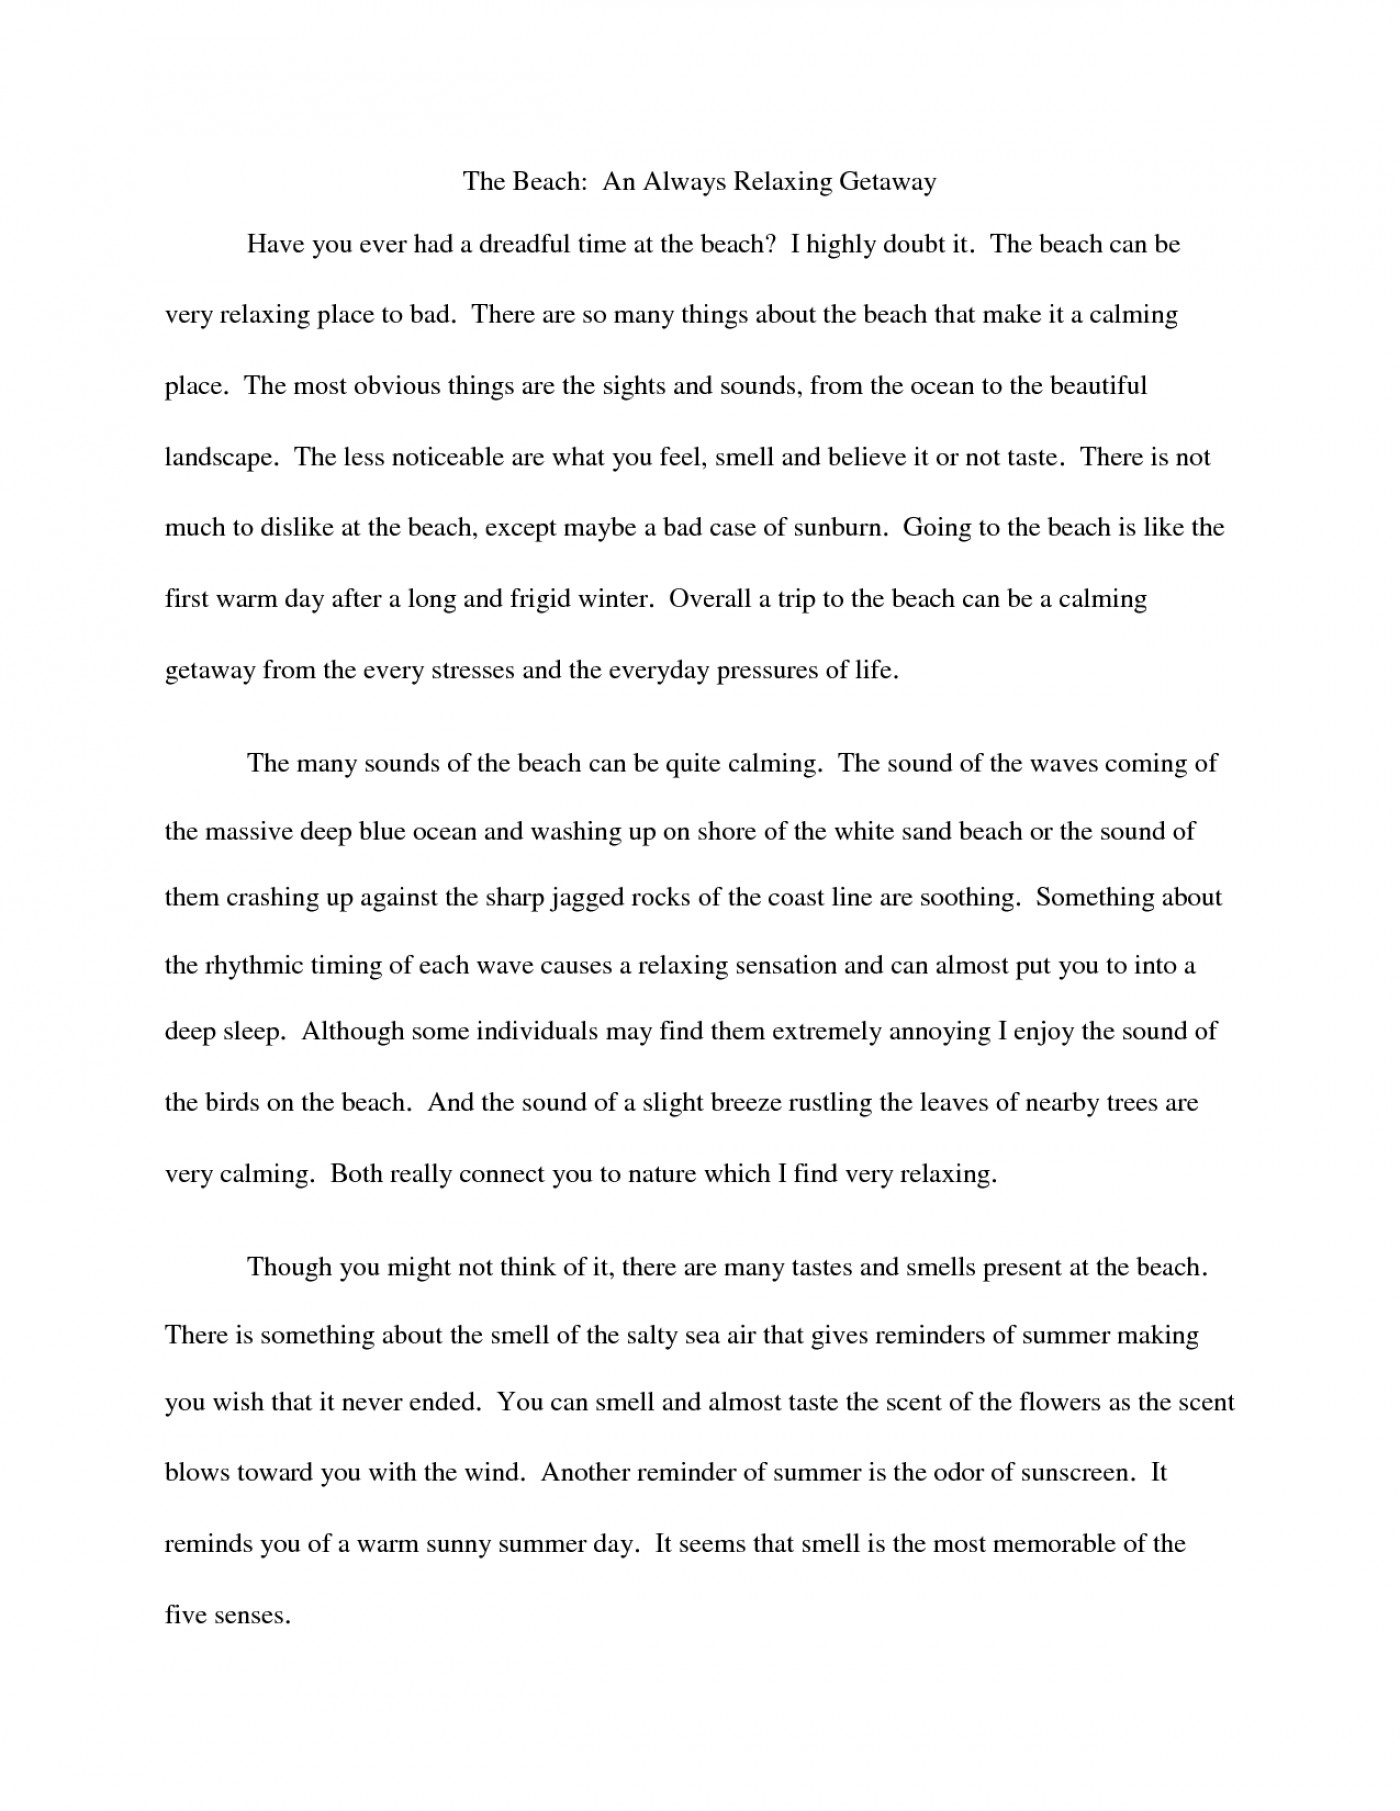 006 Essay Example Descriptive Beach Essays College That Stand Out Odvqltnc Short On The Sunset Paper Barefoot About Walk Vacation Narrative At Night Free Unbelievable Examples For Grade 7 Middle School Sample Pdf 1400